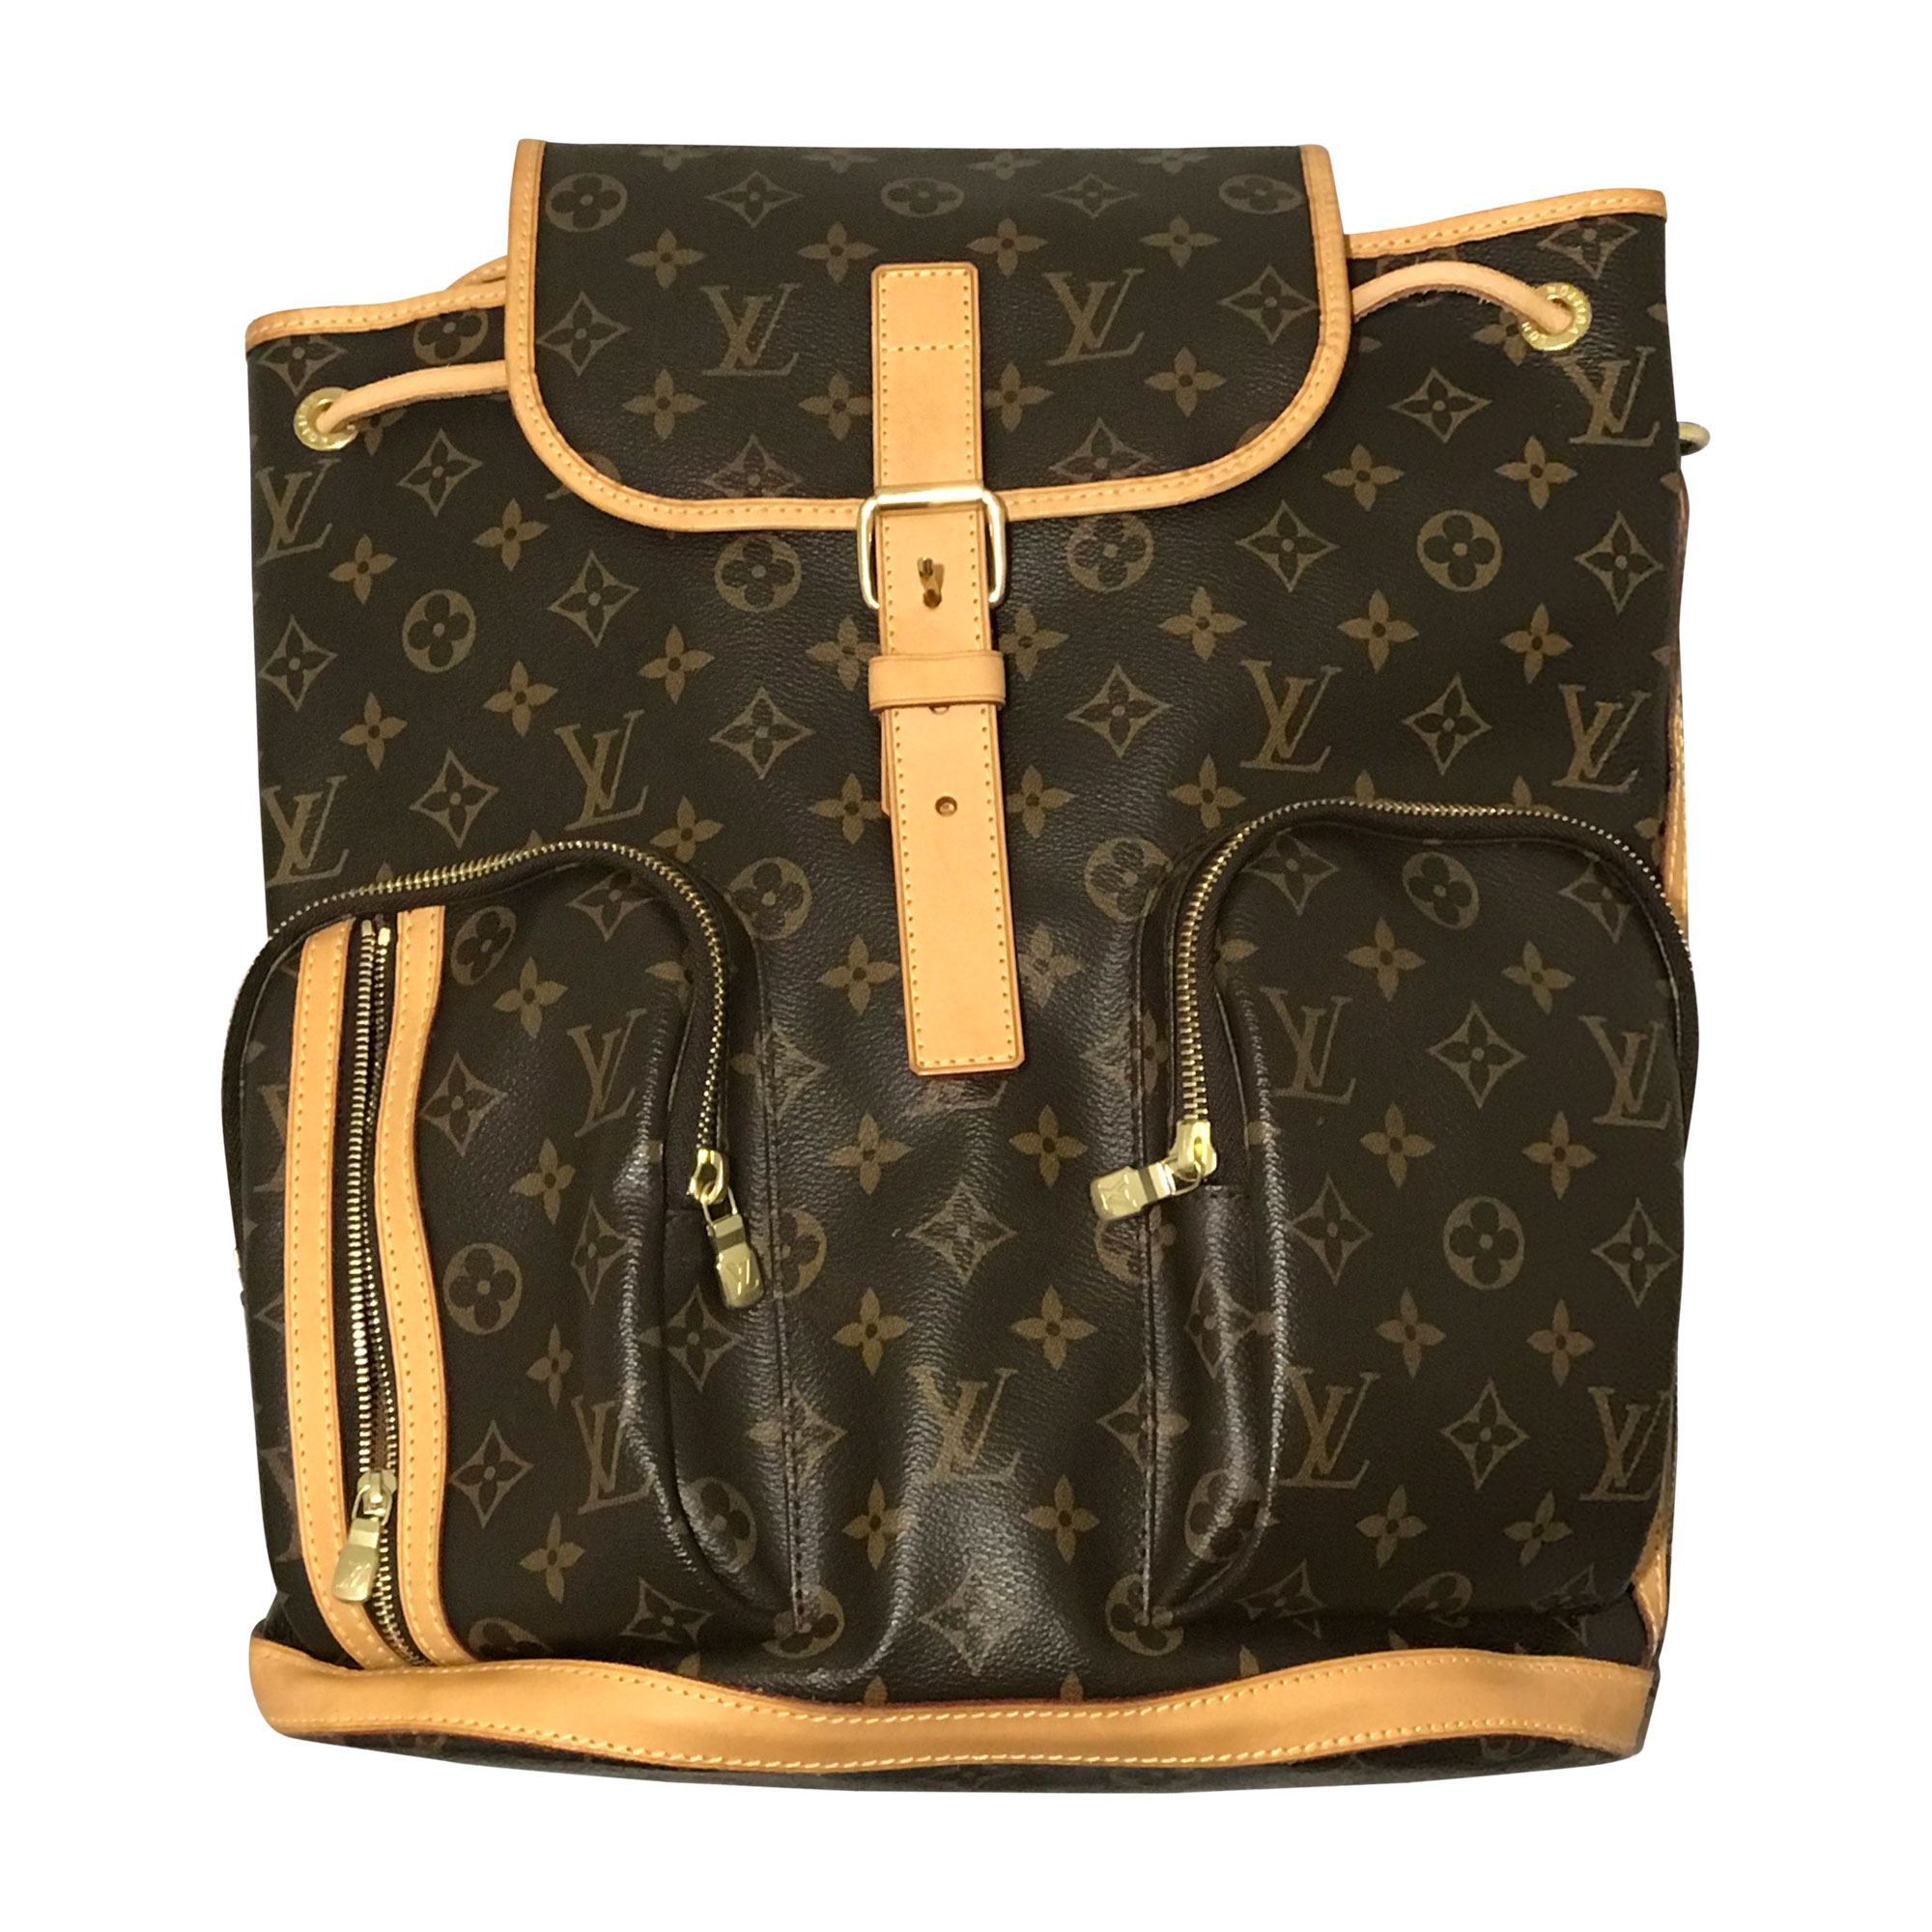 5cee0fc8f3 Zaino LOUIS VUITTON marrone vendu par Yog1646 - 7480221